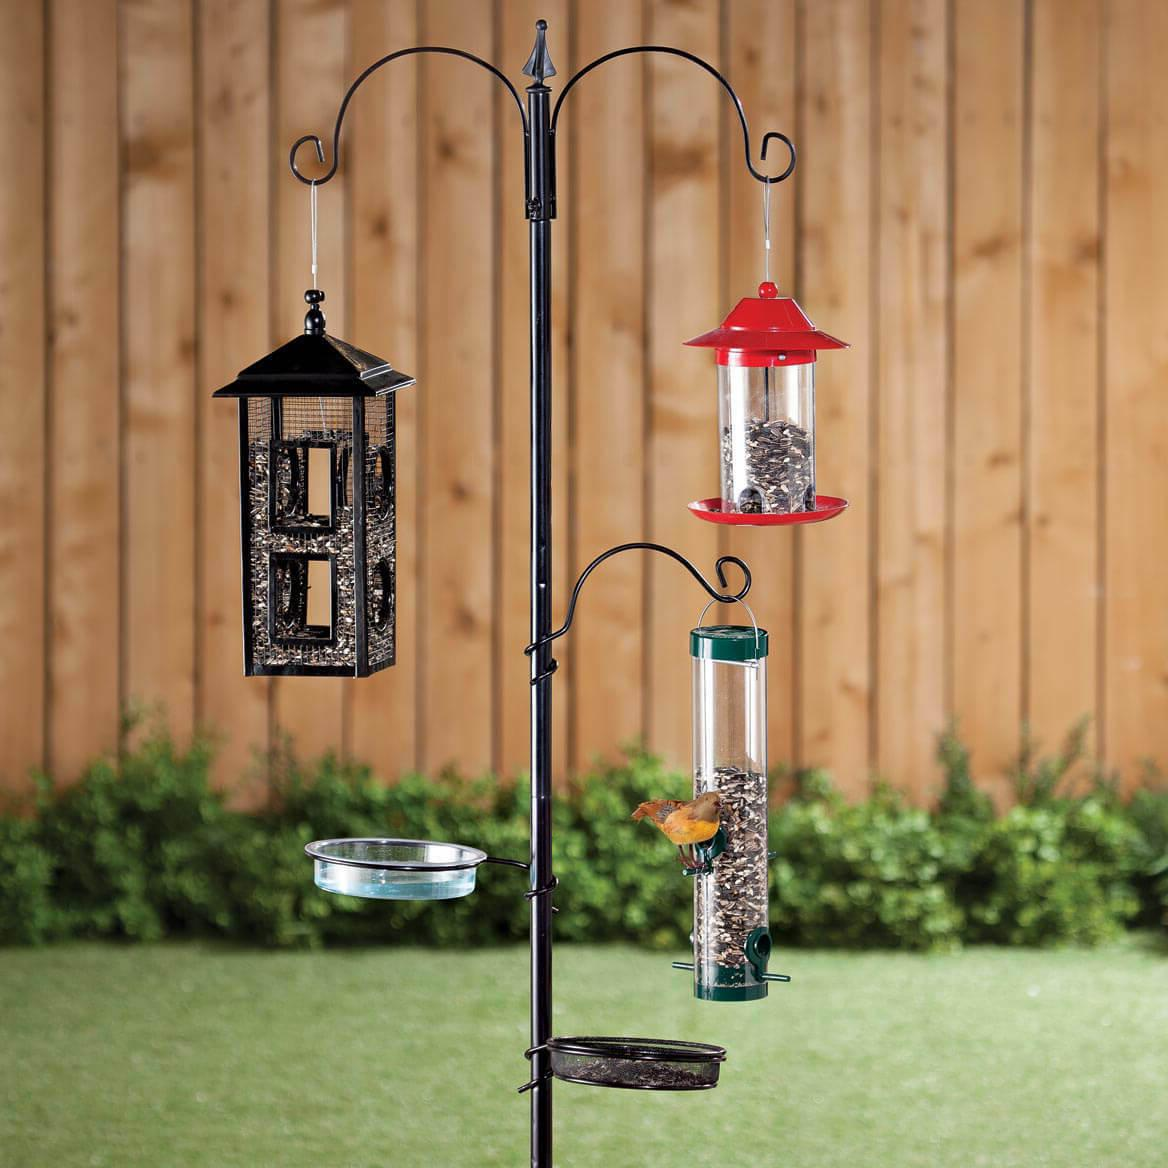 Wild Bird Feeder Stand Seed Tray Birds feeding Station Outdo